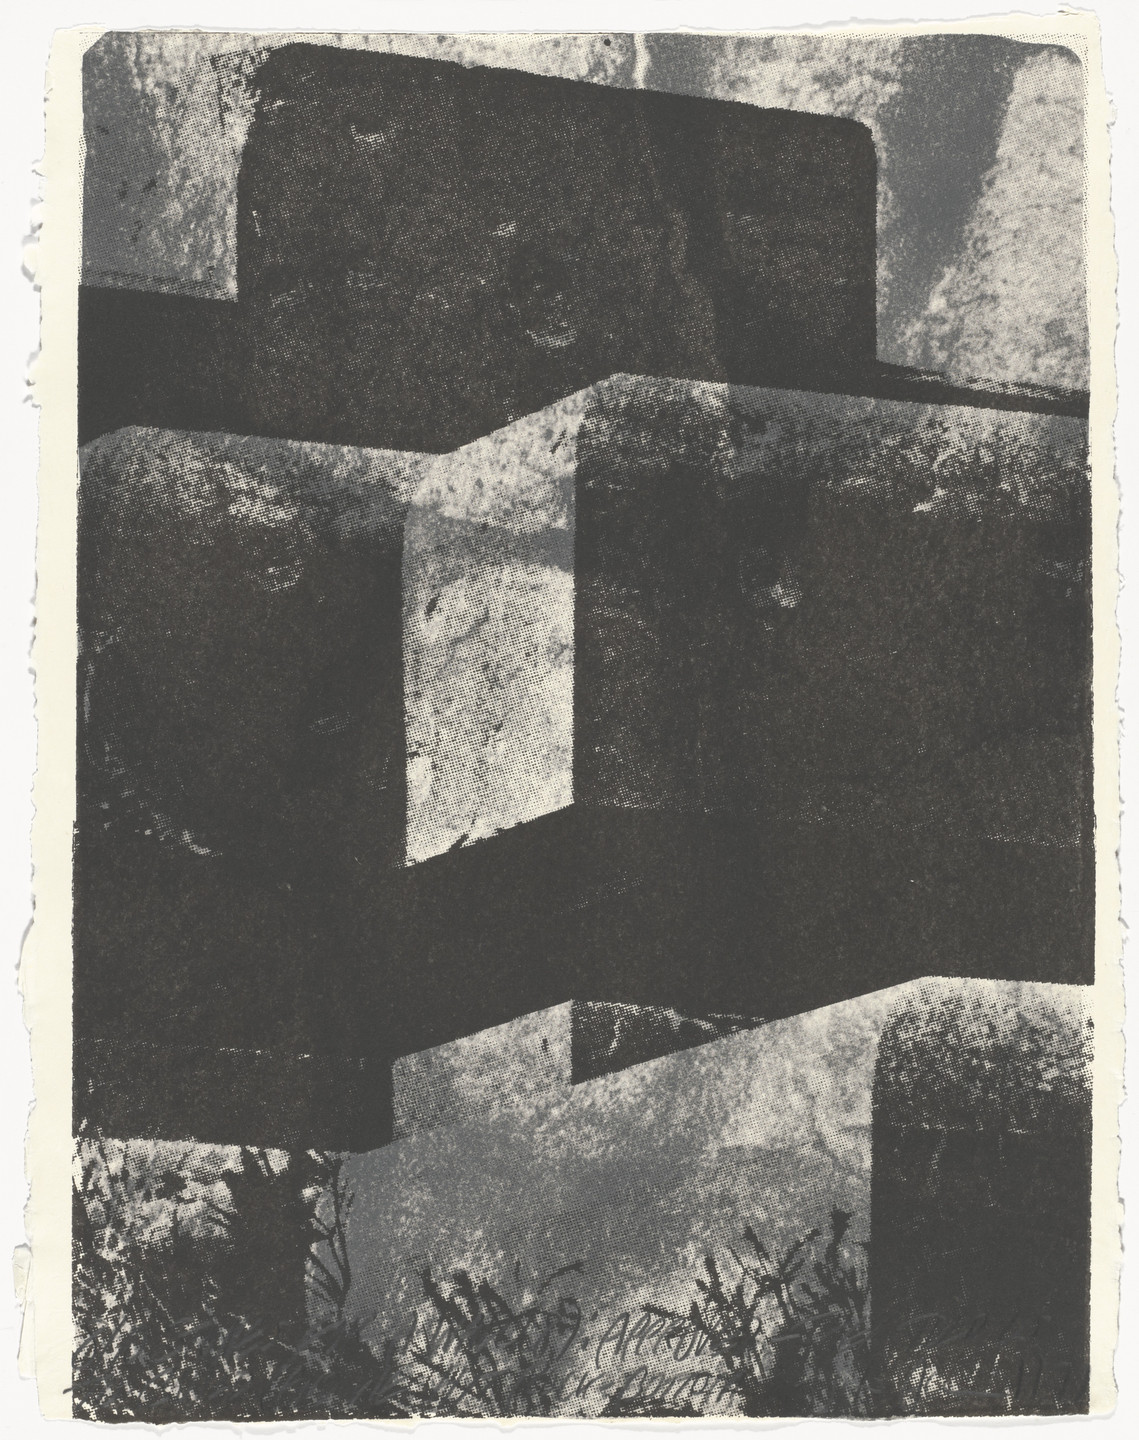 Vito Acconci. Stones for a Wall (8) from Stones for a Wall. 1977